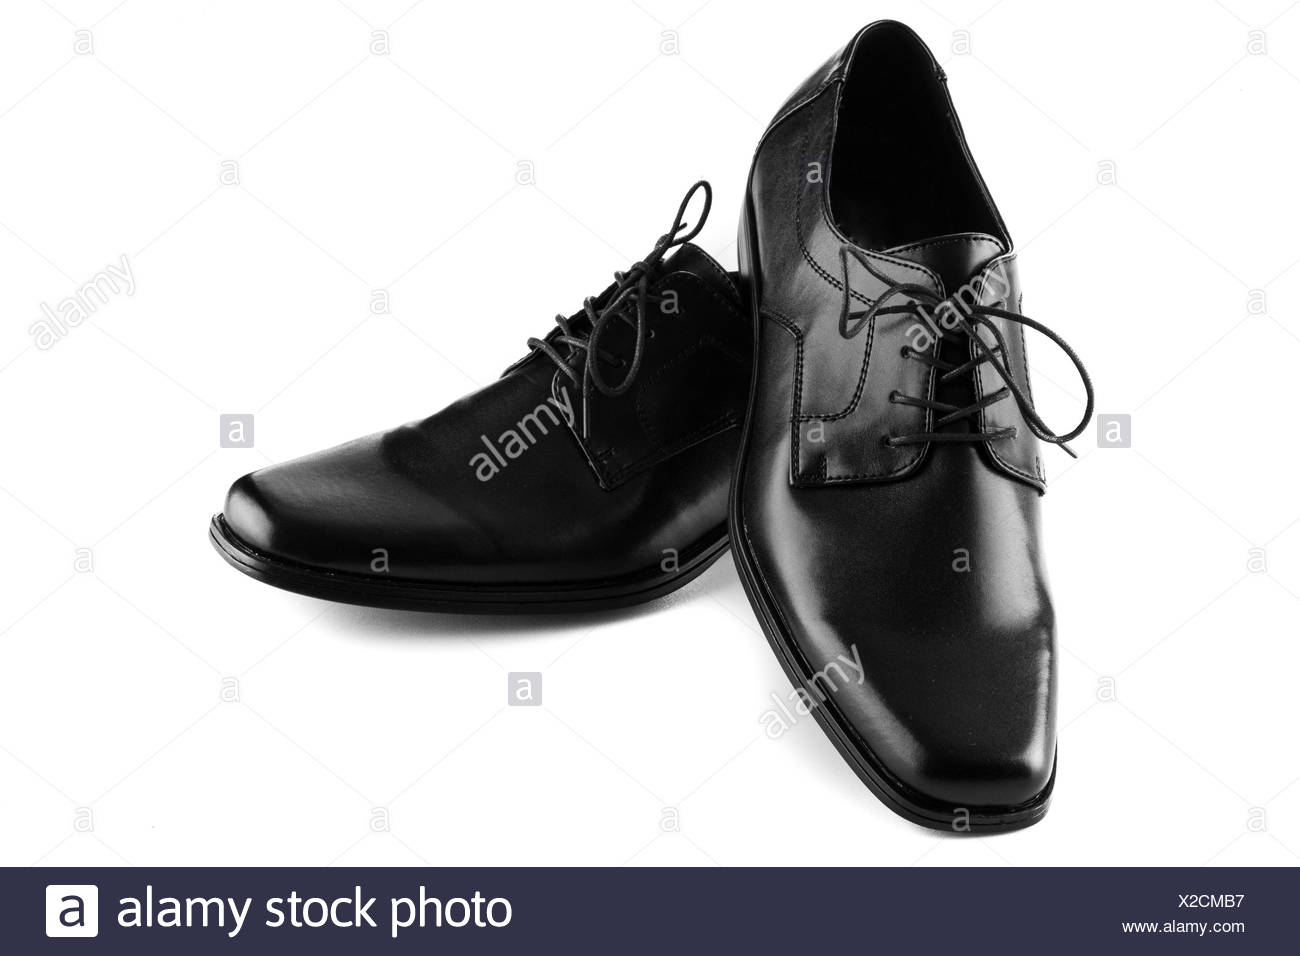 black leather shoes - Stock Image